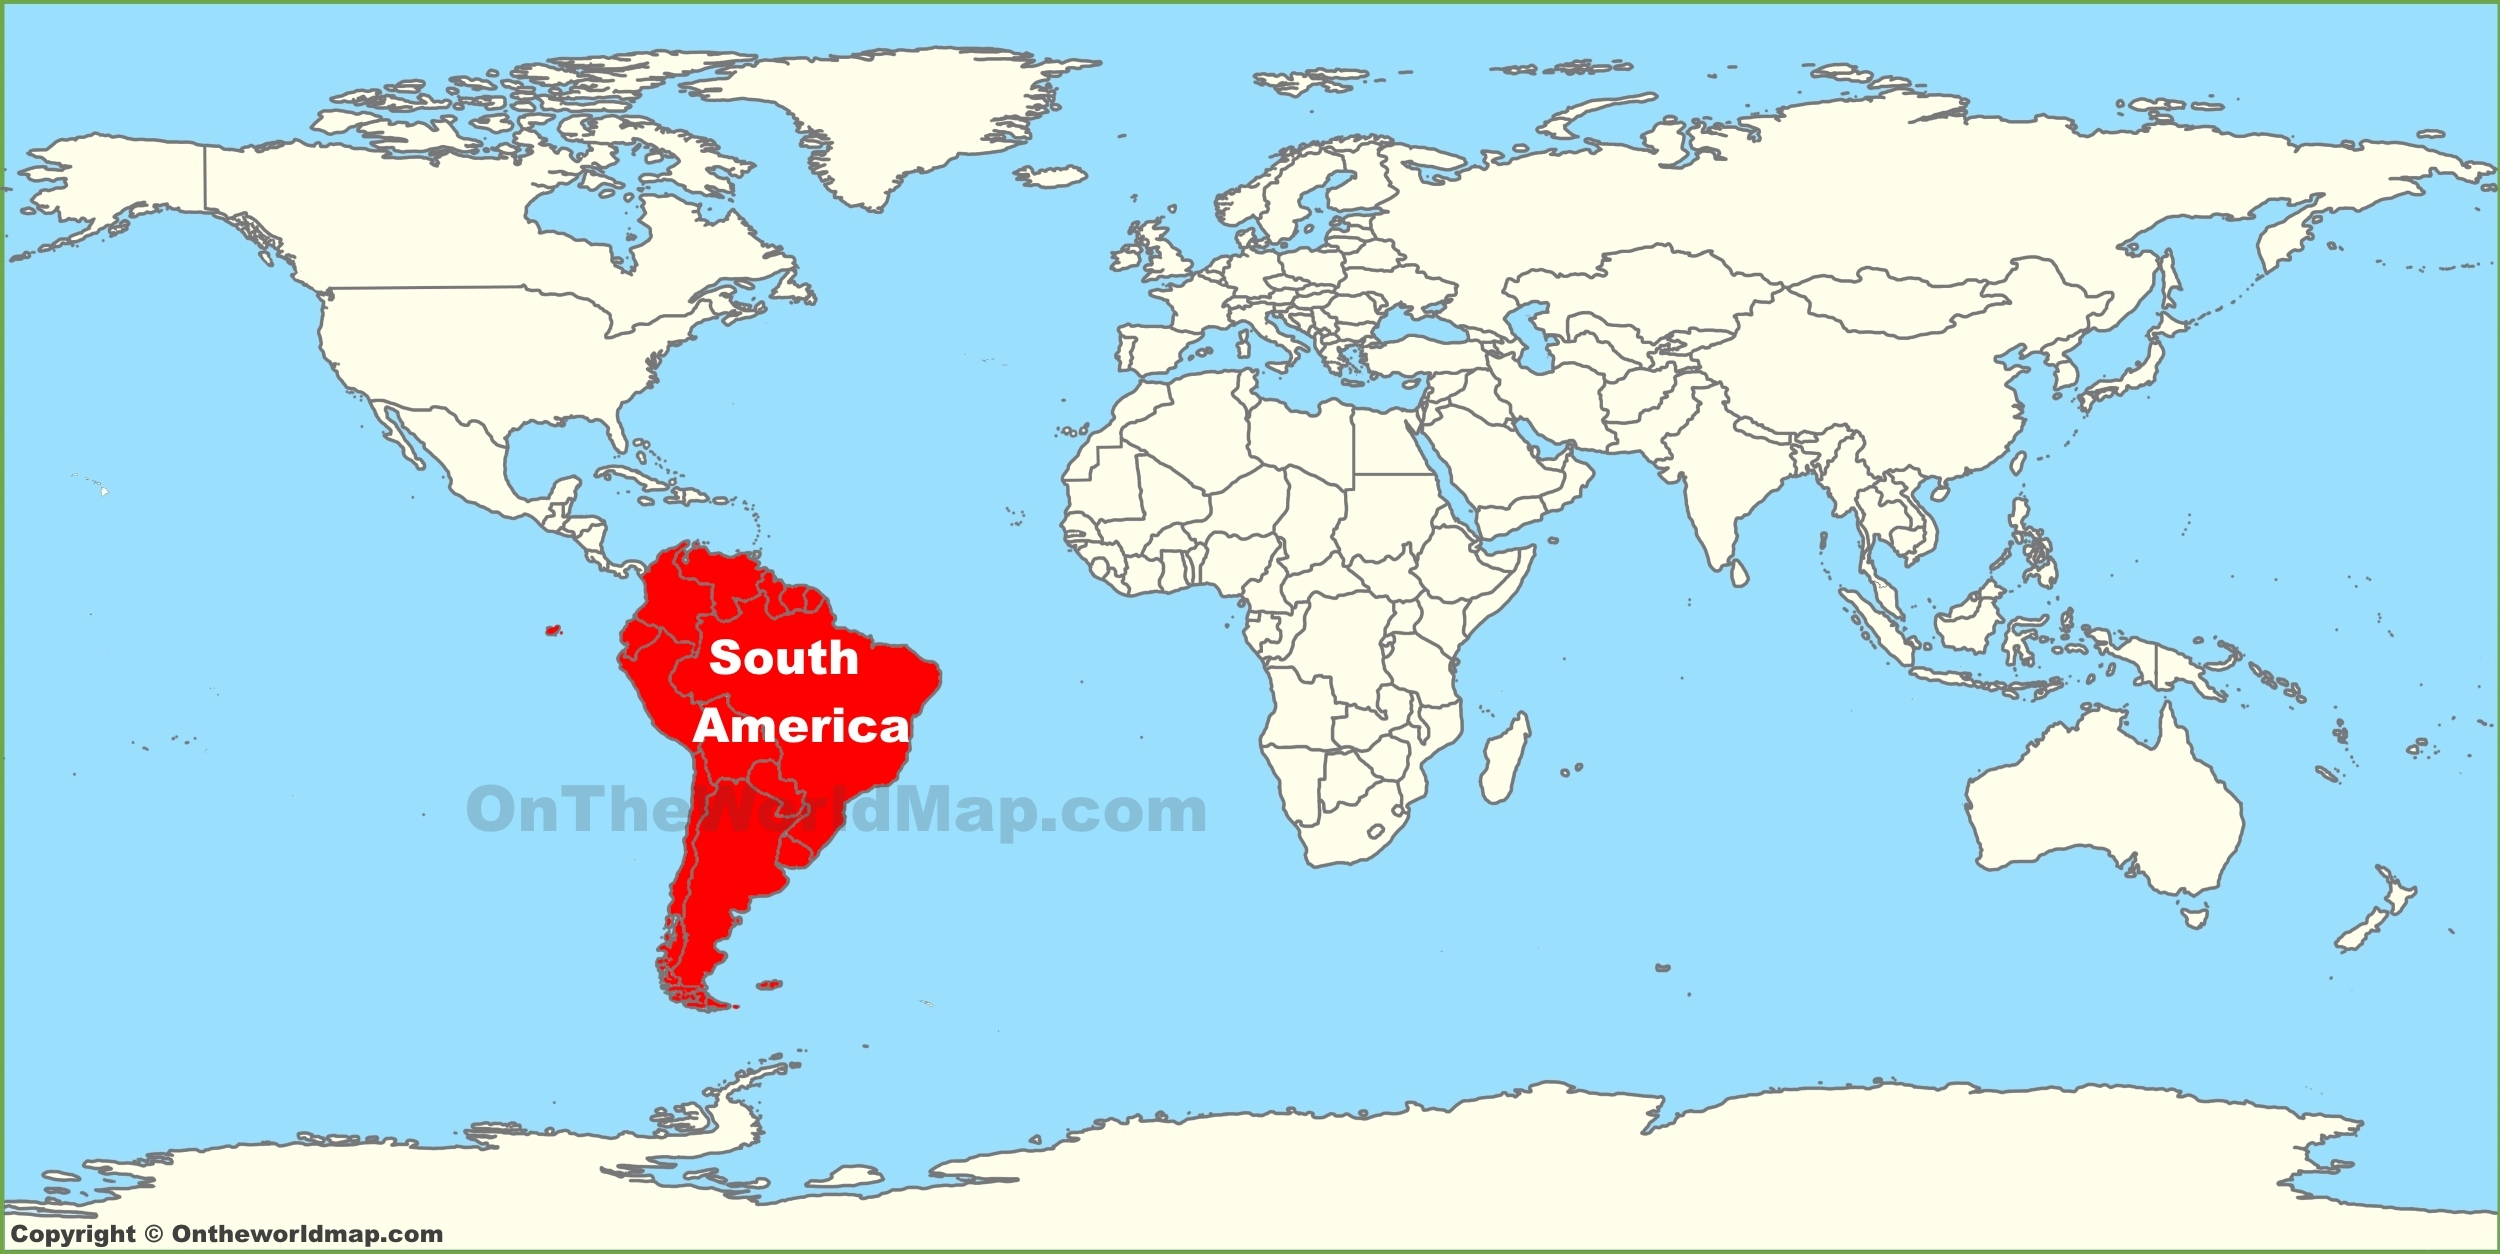 South america location on the world map south america location on the world map gumiabroncs Image collections